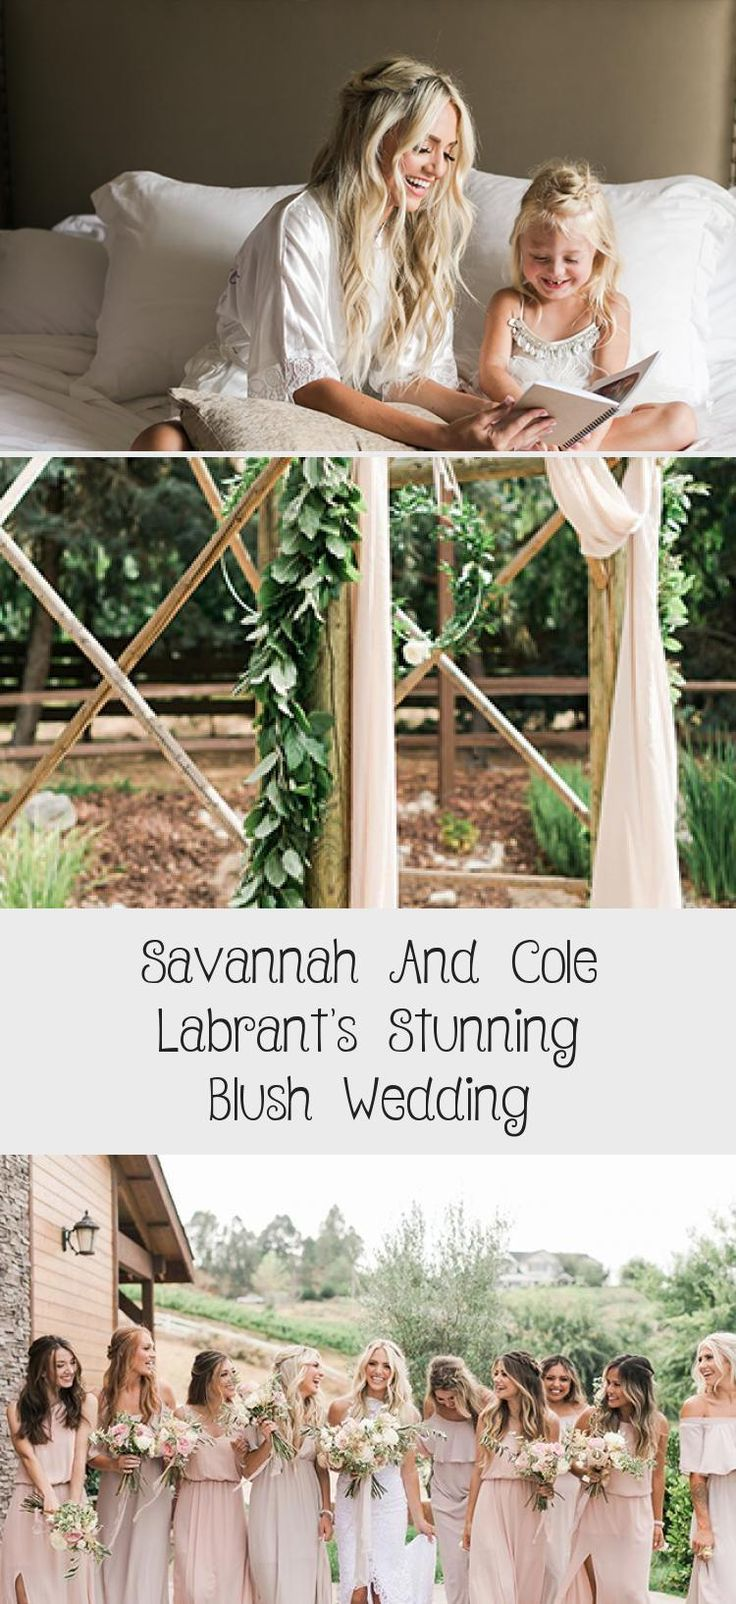 Savannah and Cole LaBrant's Stunning Blush Wedding - Inspired By This #LavenderBridesmaidDresses #BridesmaidDressesMidi #FloralBridesmaidDresses #BridesmaidDressesBoho #GreyBridesmaidDresses